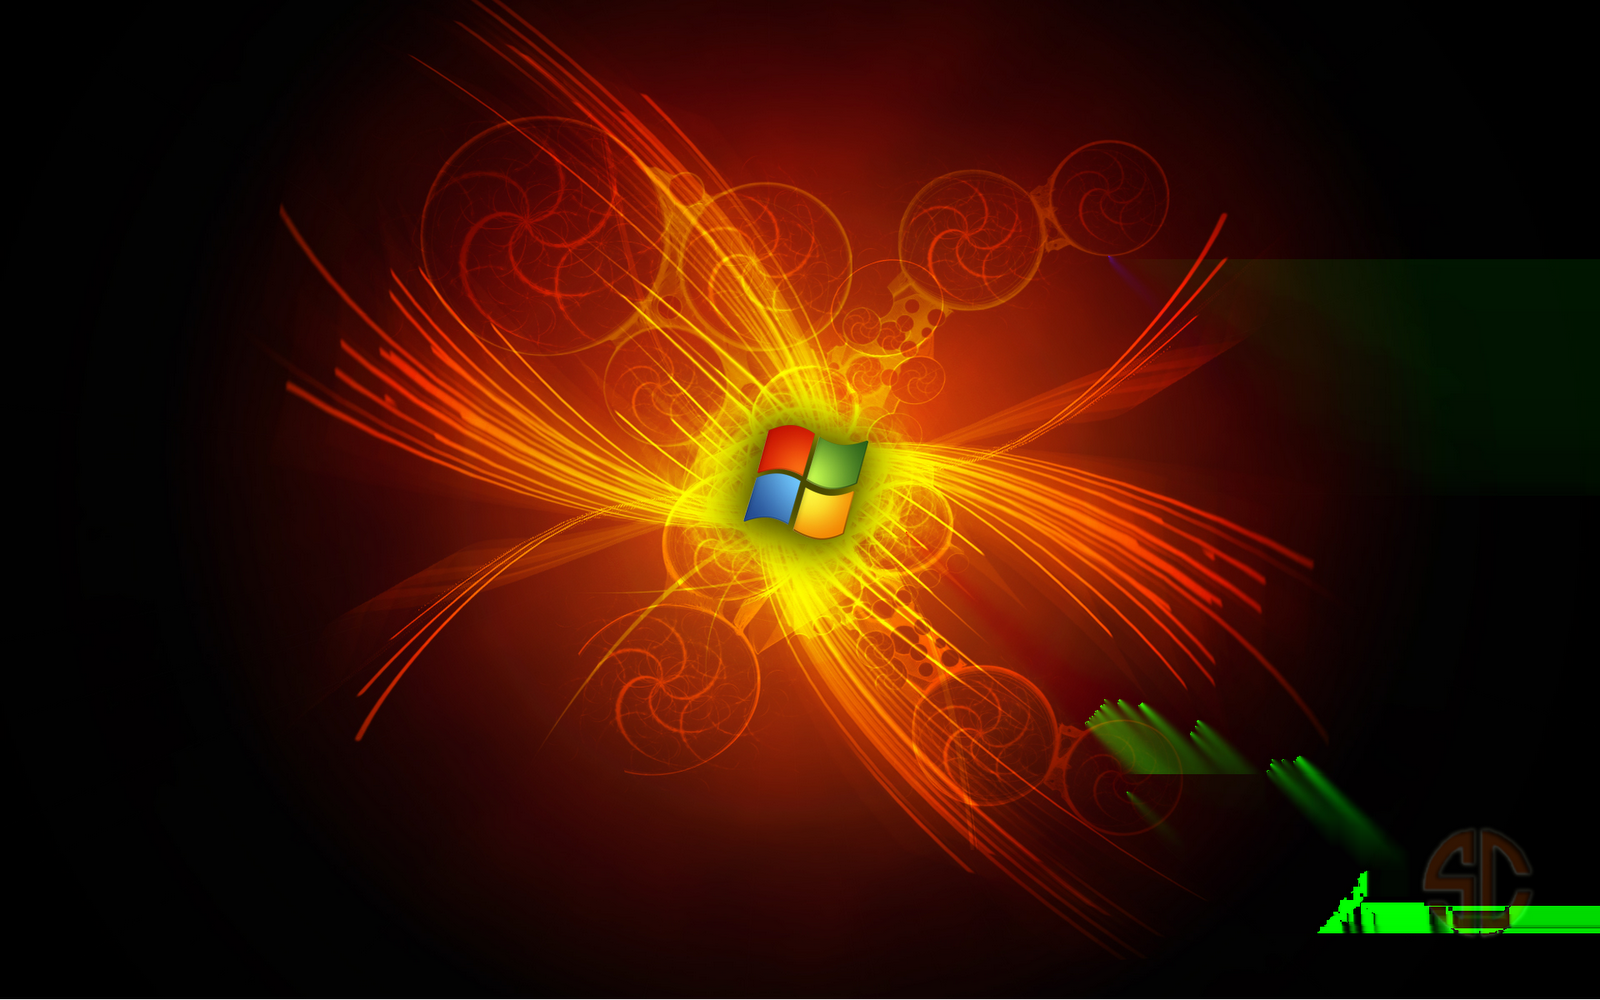 http://4.bp.blogspot.com/-e-ebcO-mN78/UG0qxu51tTI/AAAAAAAAJSA/gTWeoWX5rt0/s1600/Windows_7_Black_Edition_Screensaver.png